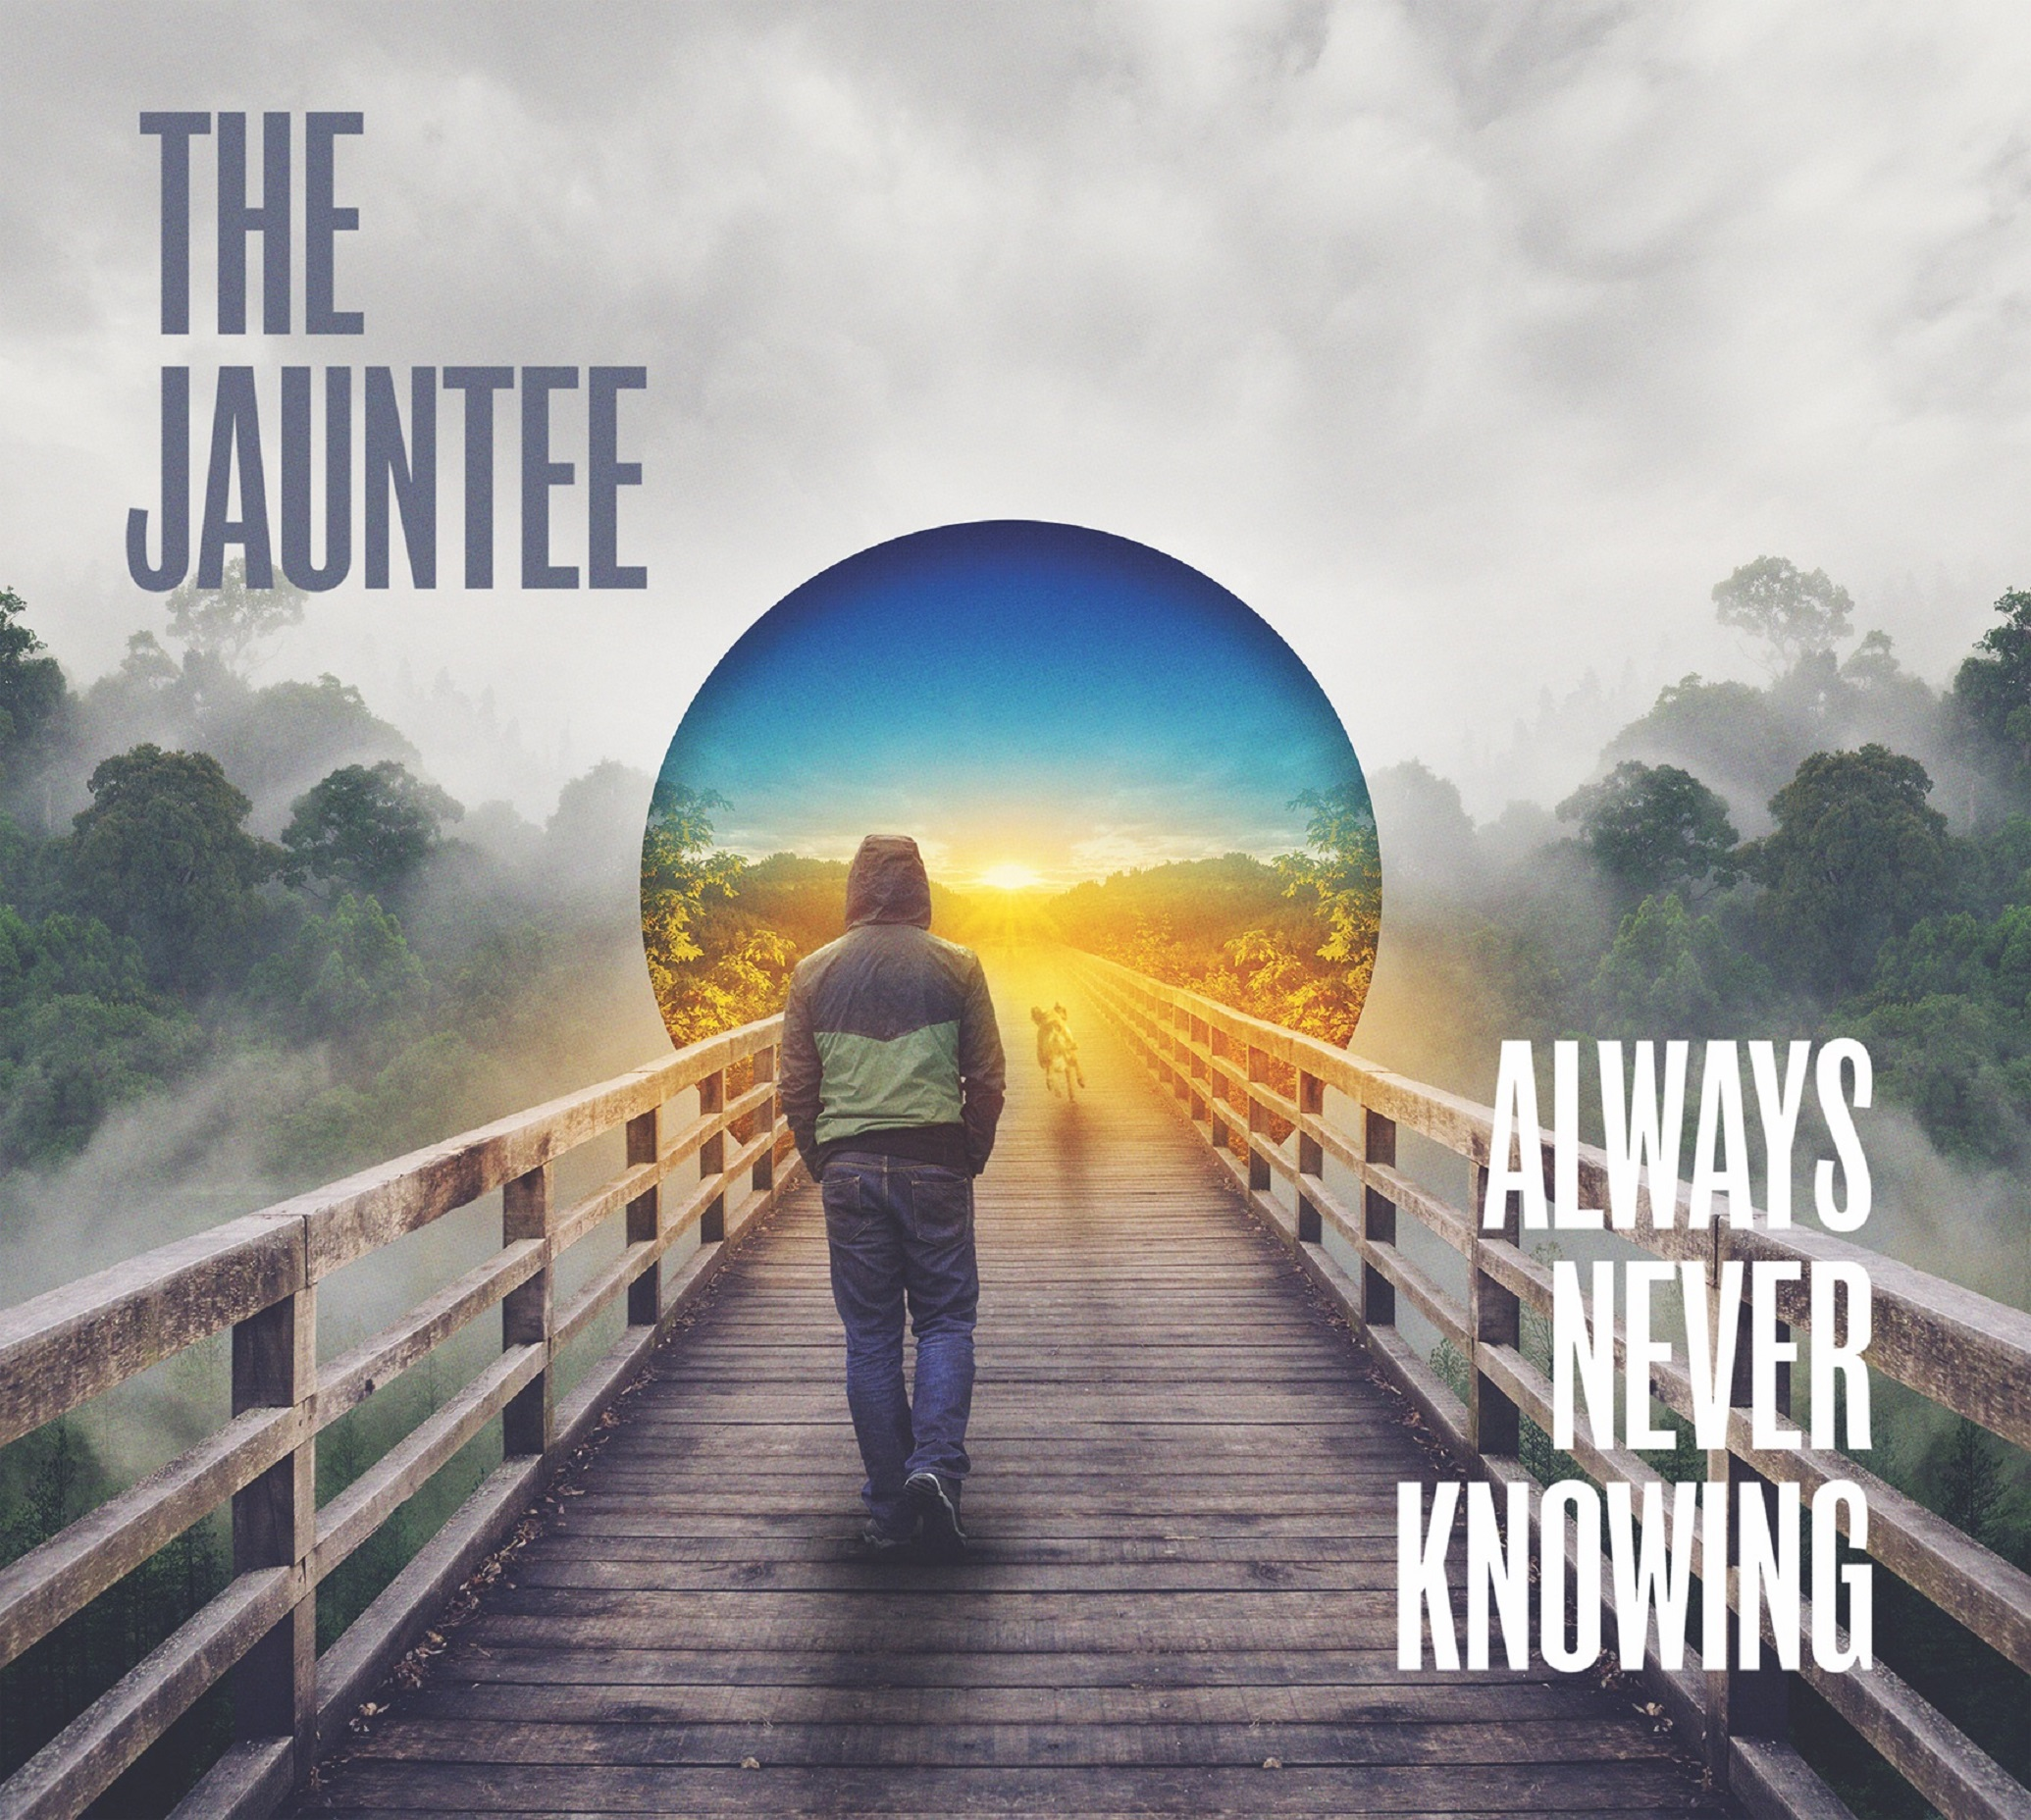 The Jauntee Announce New Album, Always Never Knowing